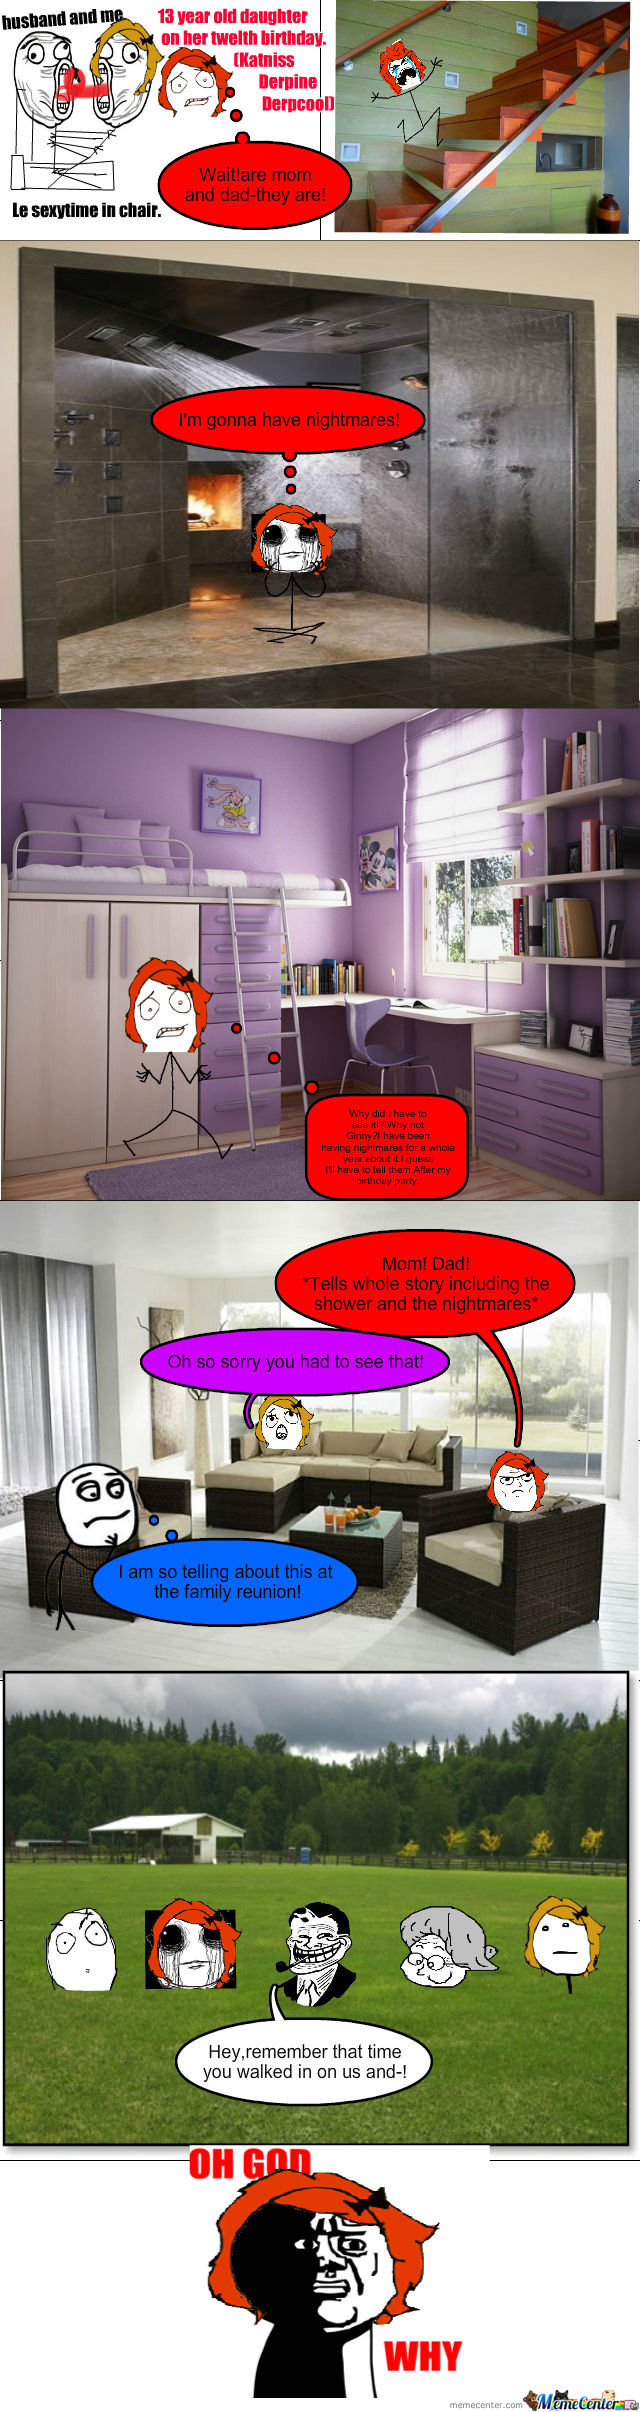 Oh God Why-Walking In On Parents